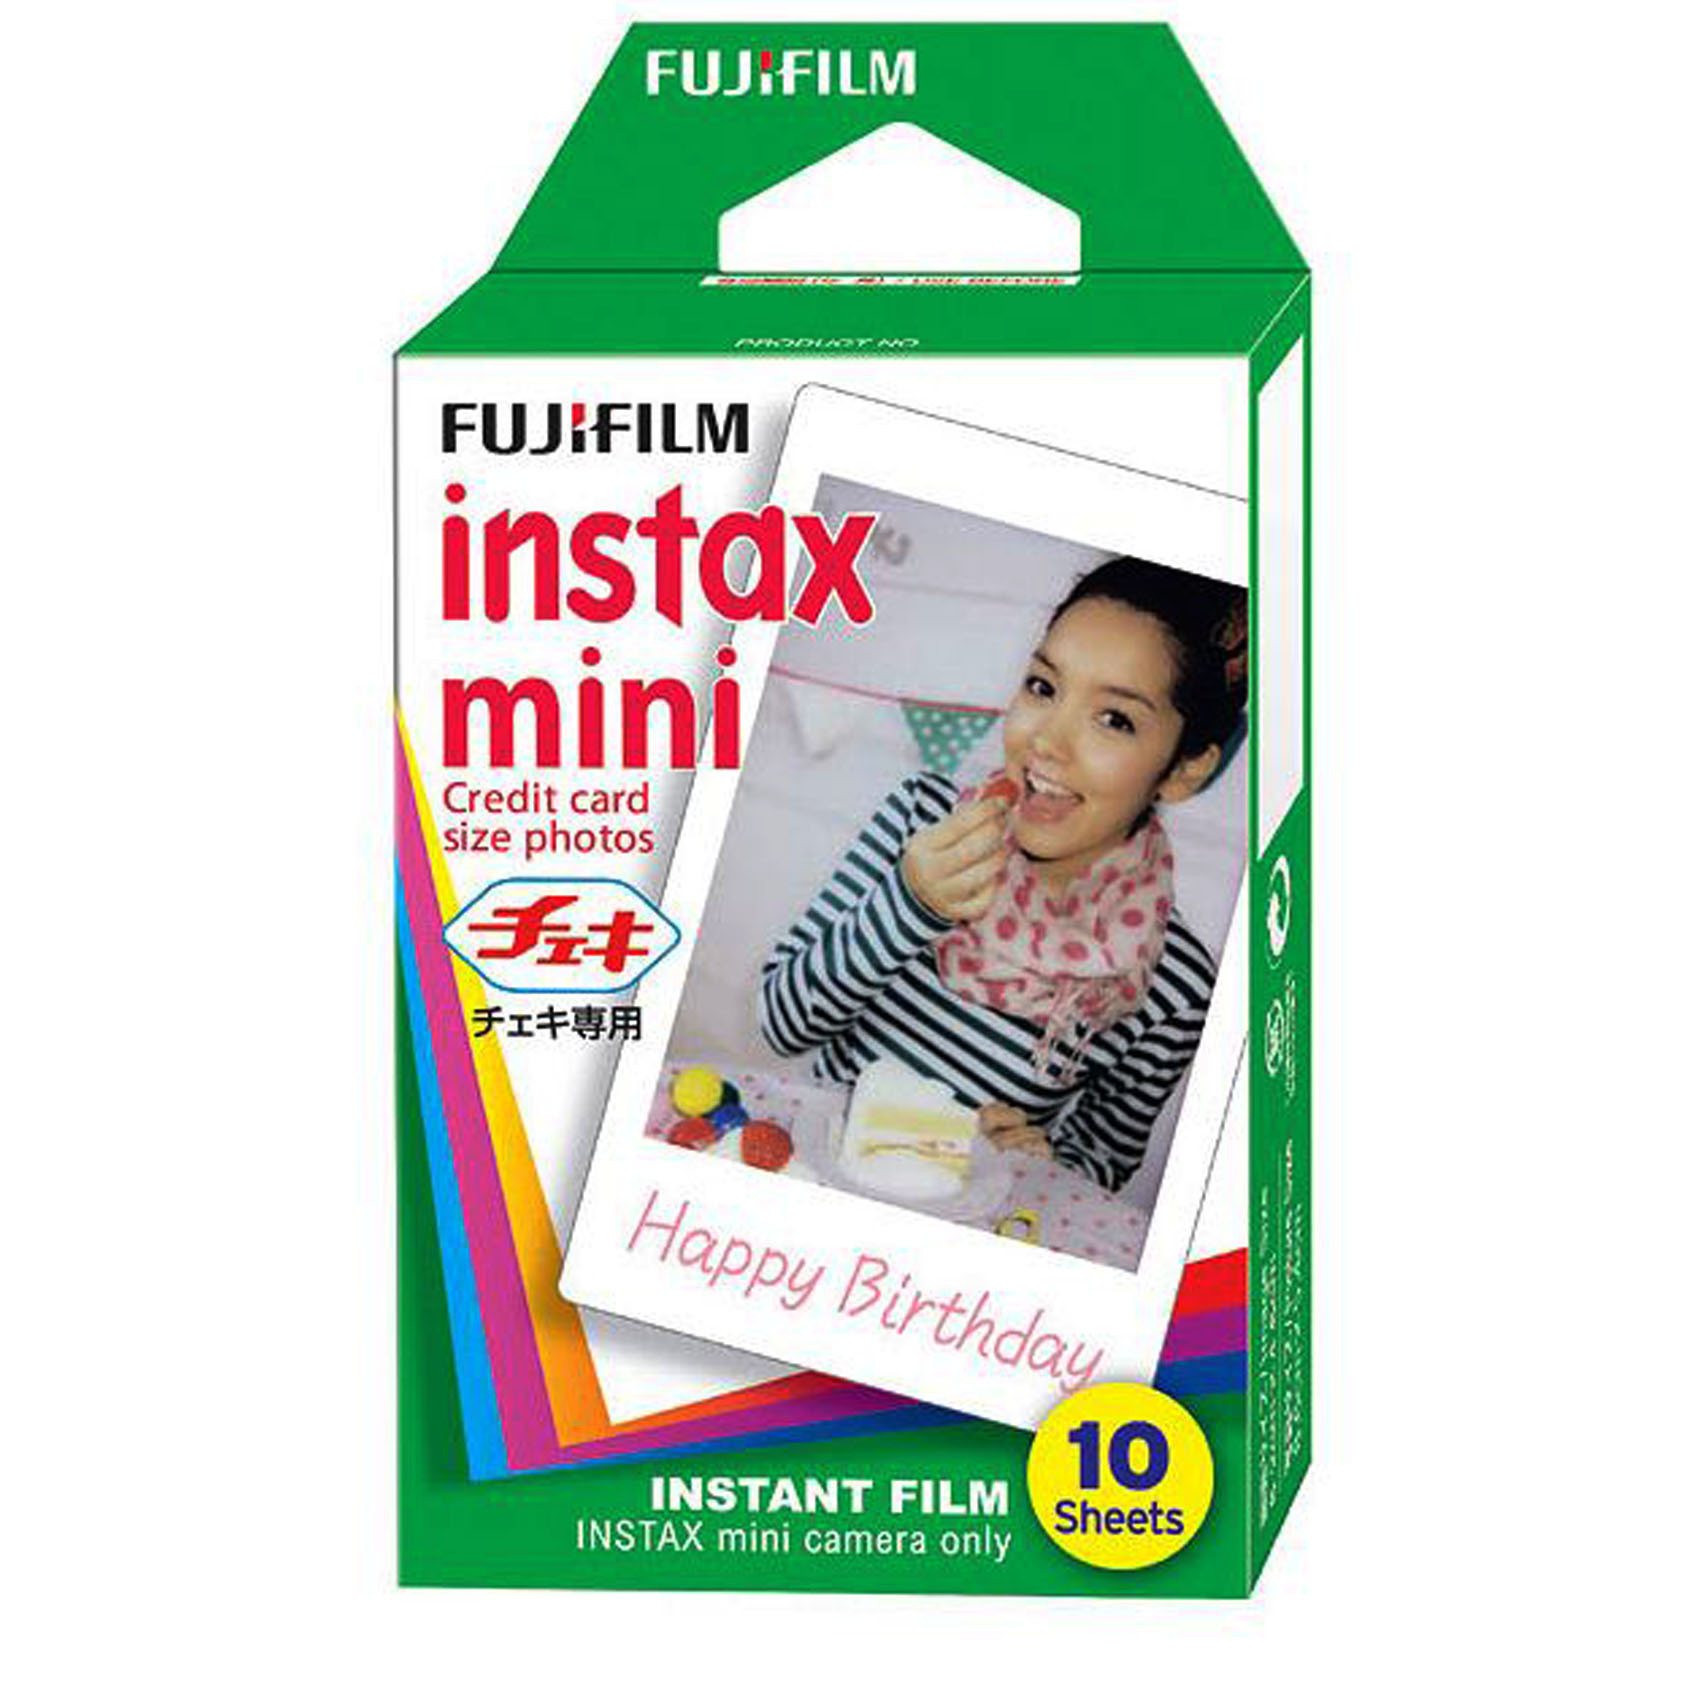 FUJIFILM-FILM INSTAX MINI 10 SHEET